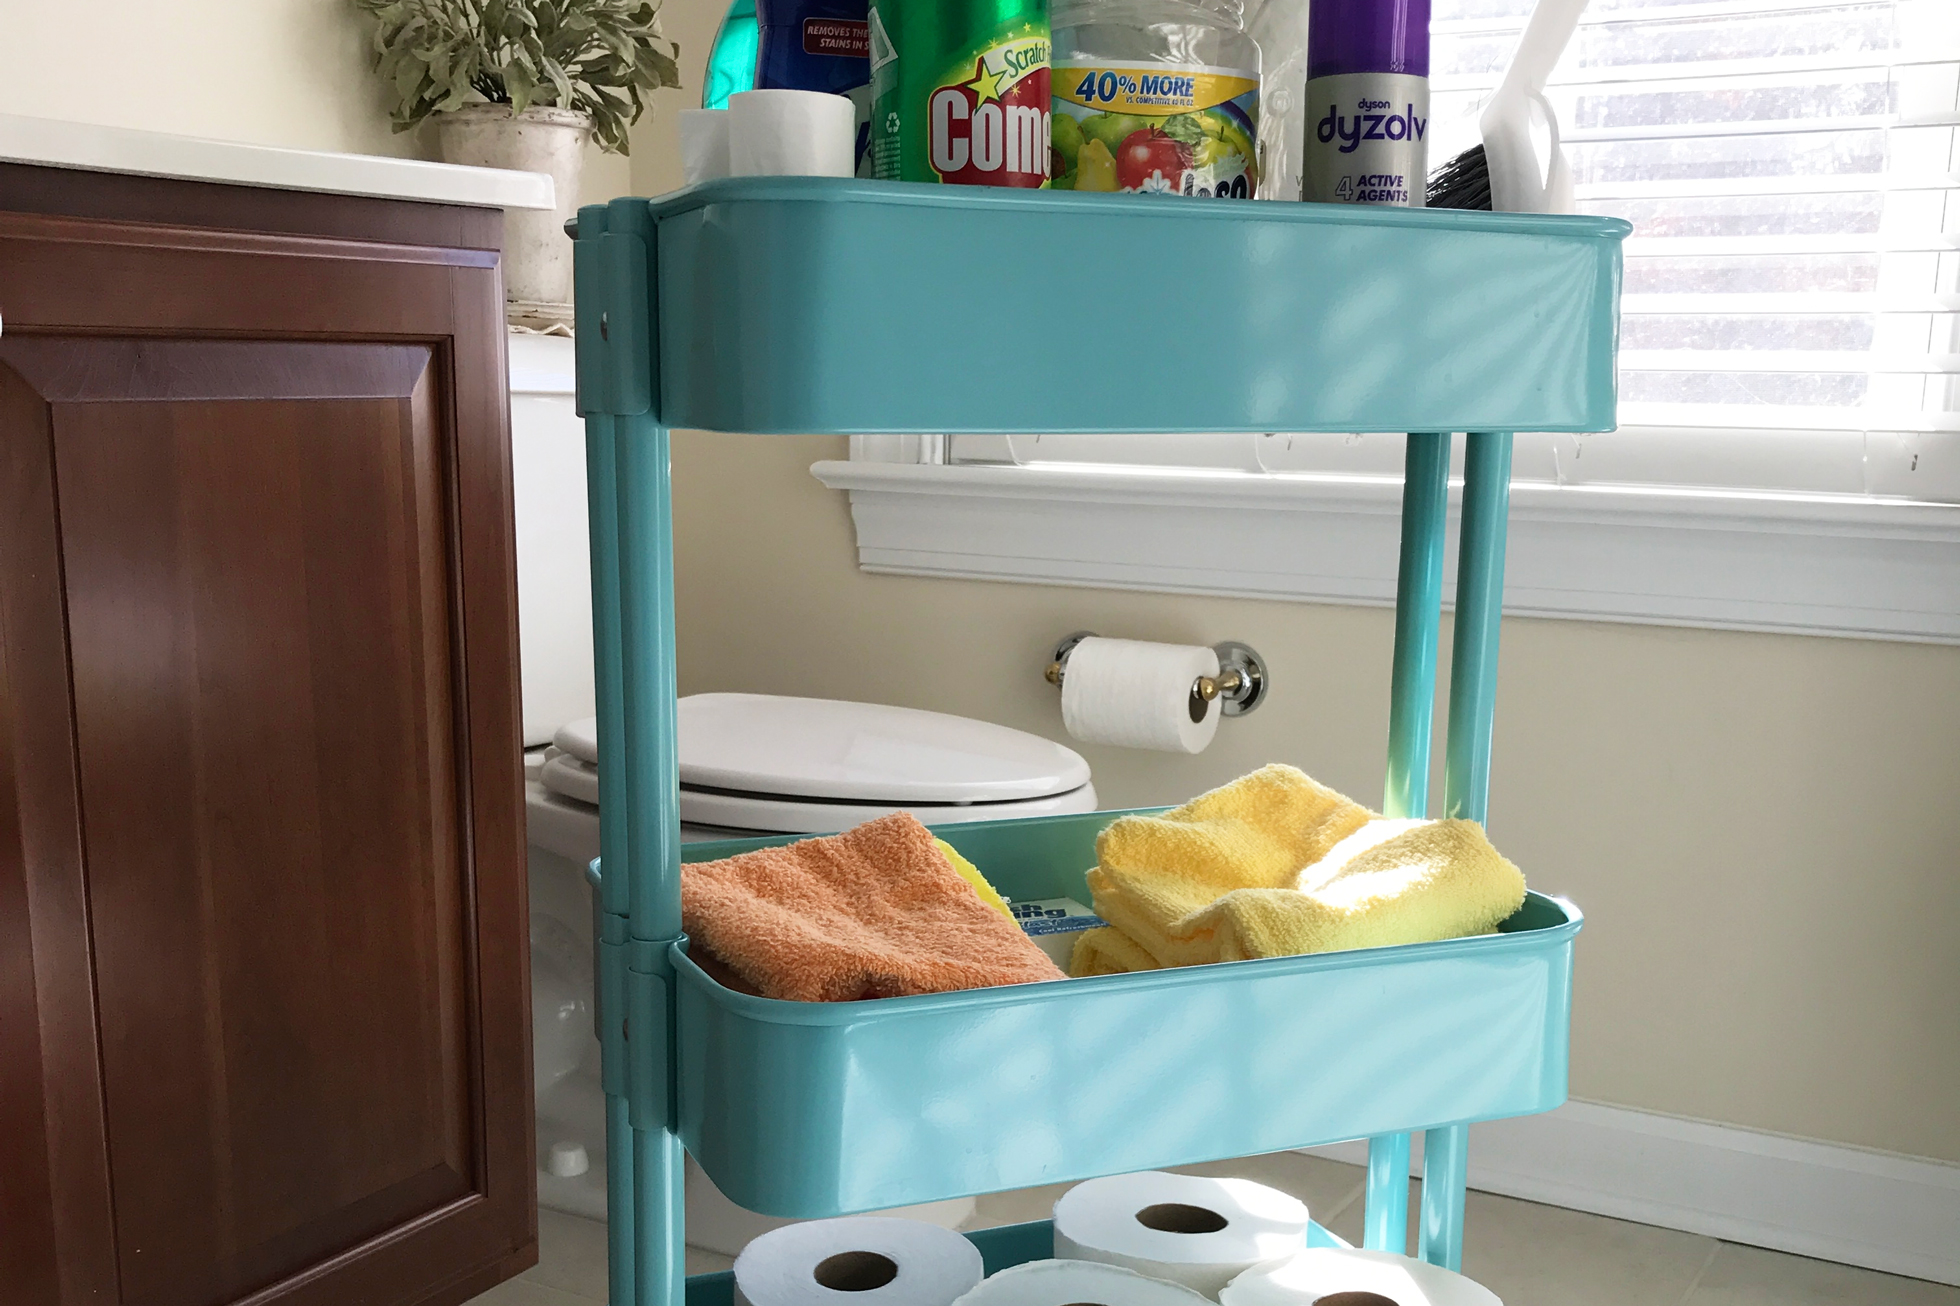 Blue cart with cleaning supplies in a bathroom